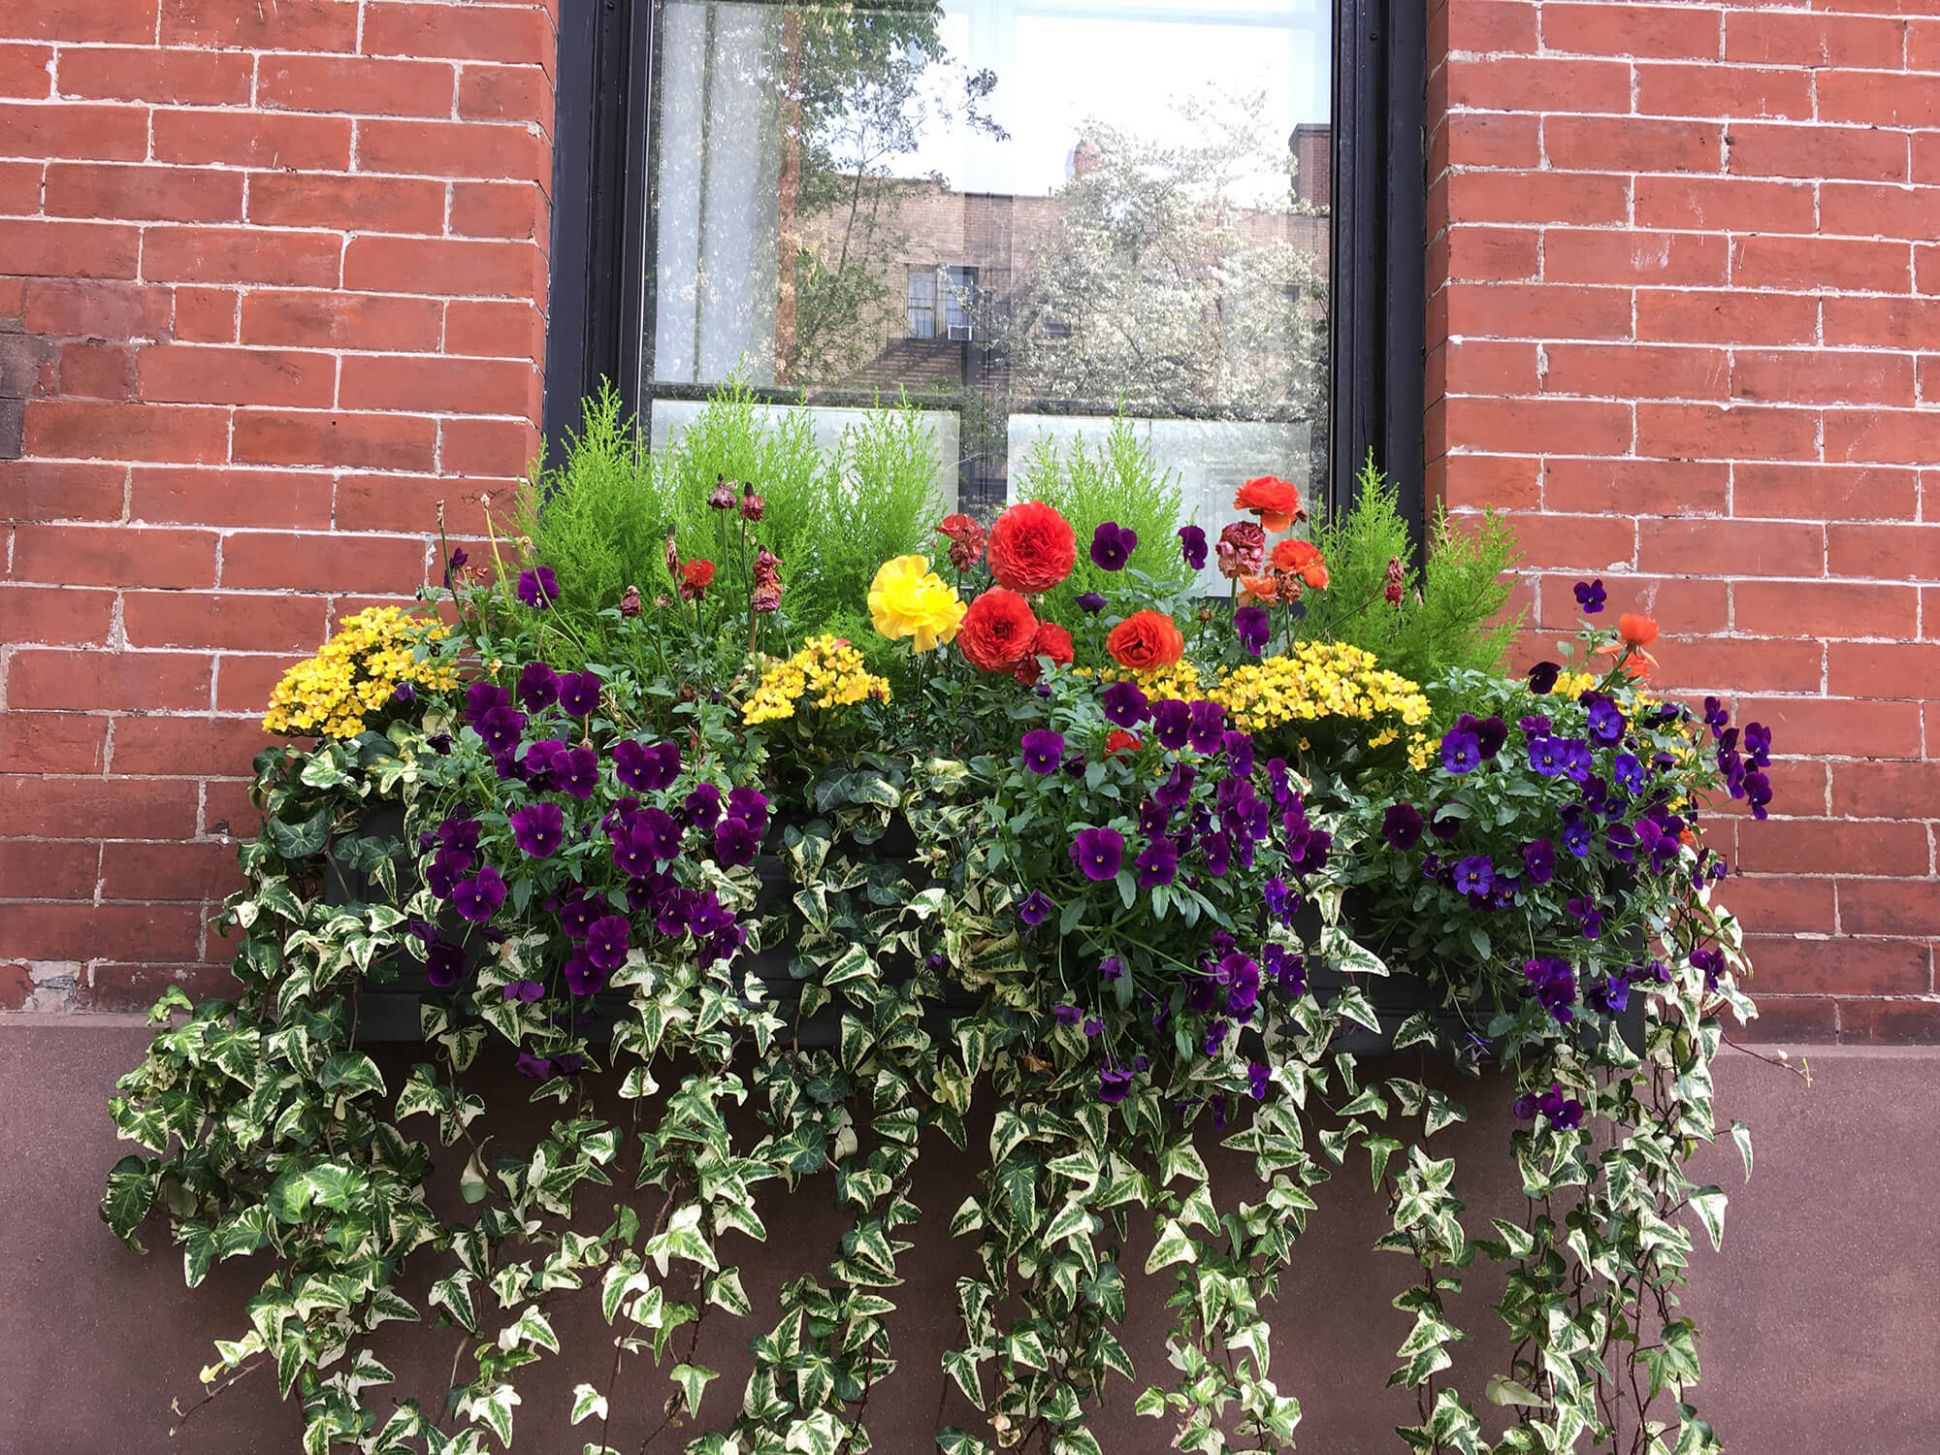 10 Tips for Beautiful Window Boxes All Year Round | Brownstoner - window box ideas